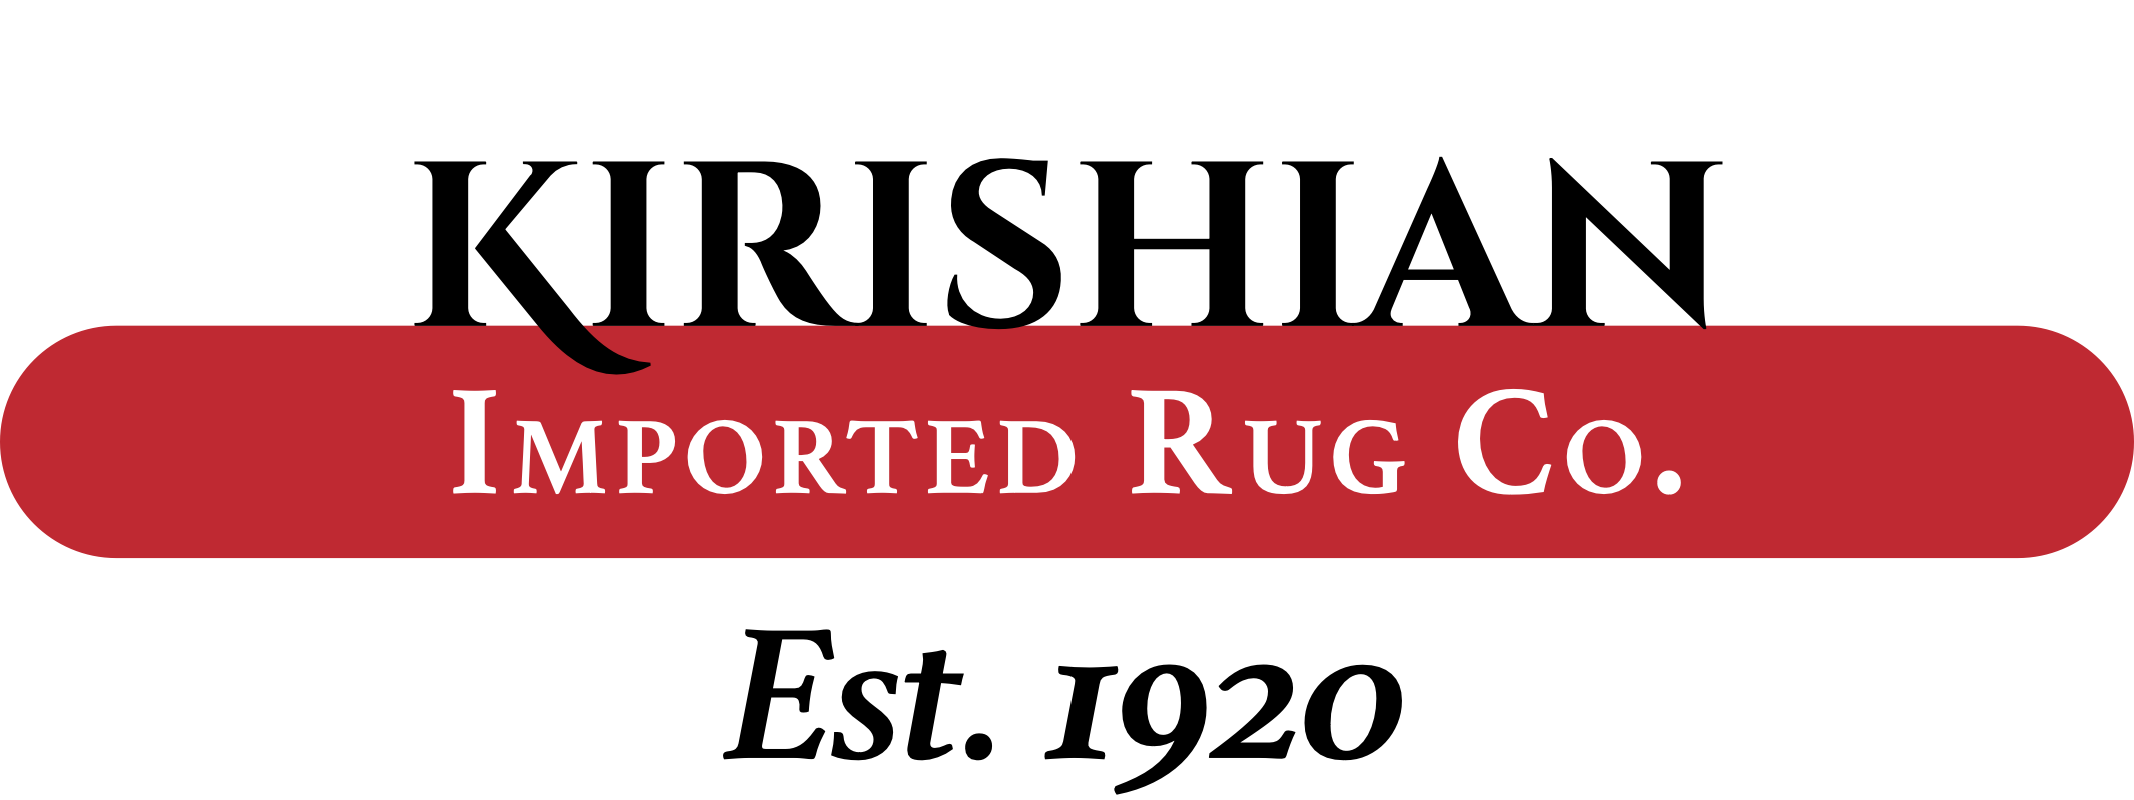 Kirishian Imported Rug Co.